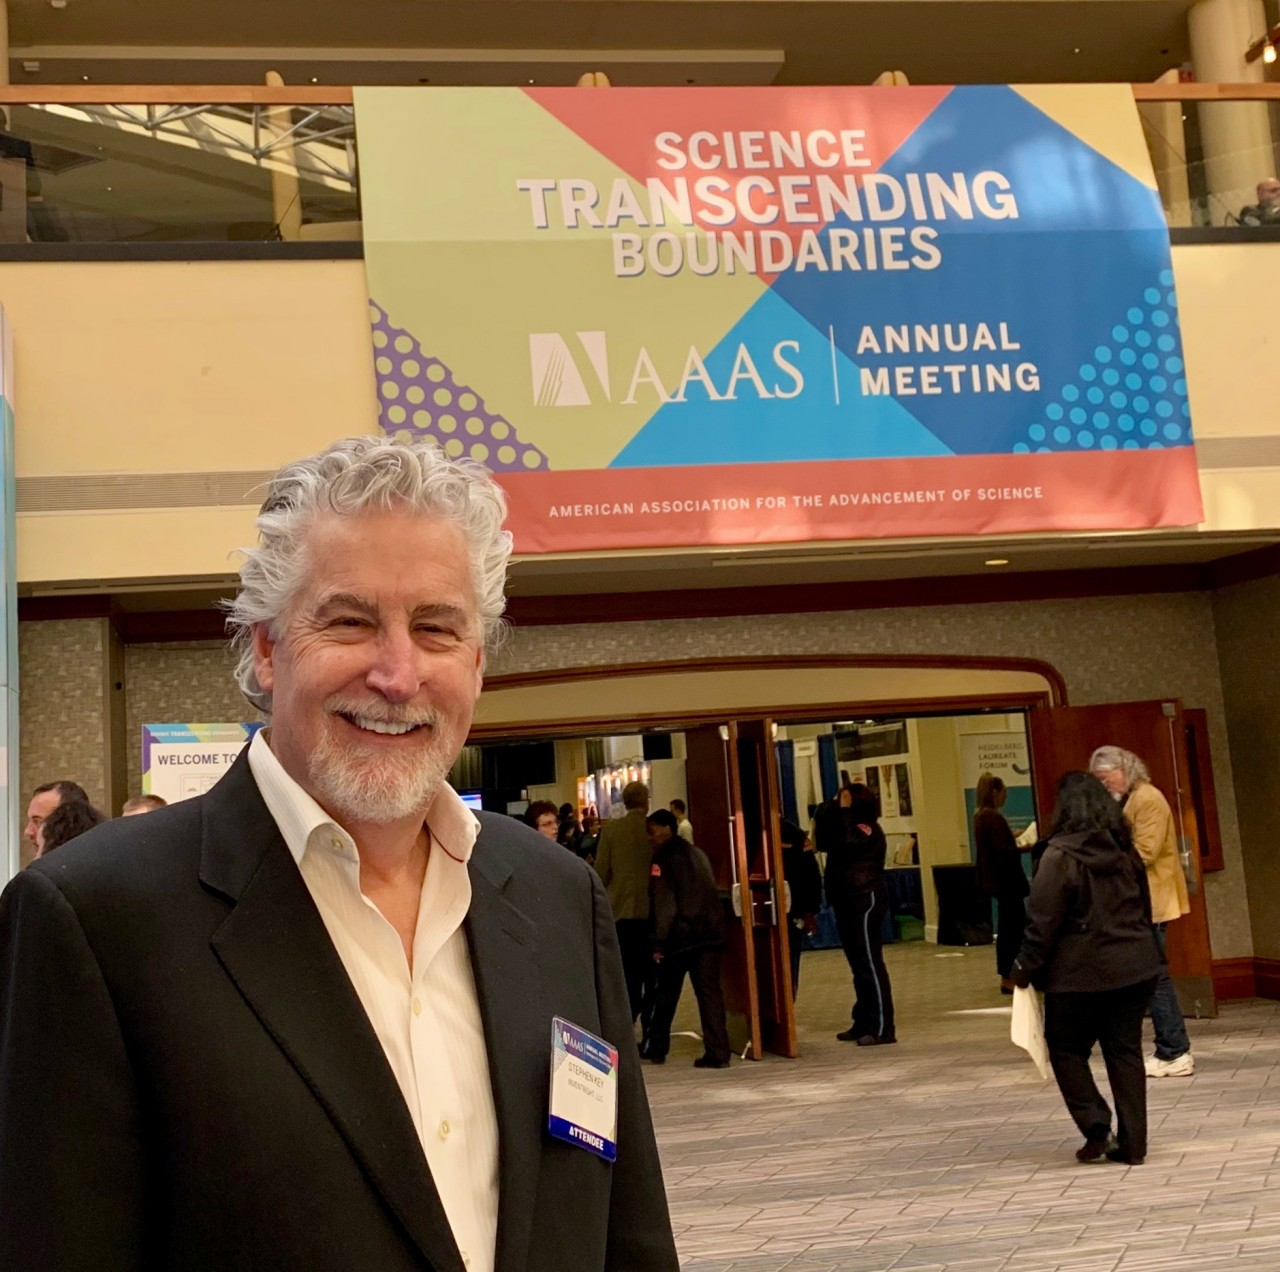 b2ap3_large_AAAS-Annual-Meeting-SK Celebrating Invention During the 2019 AAAS Annu... Inventing,licensing –,Invention Ambassadors,AAAS